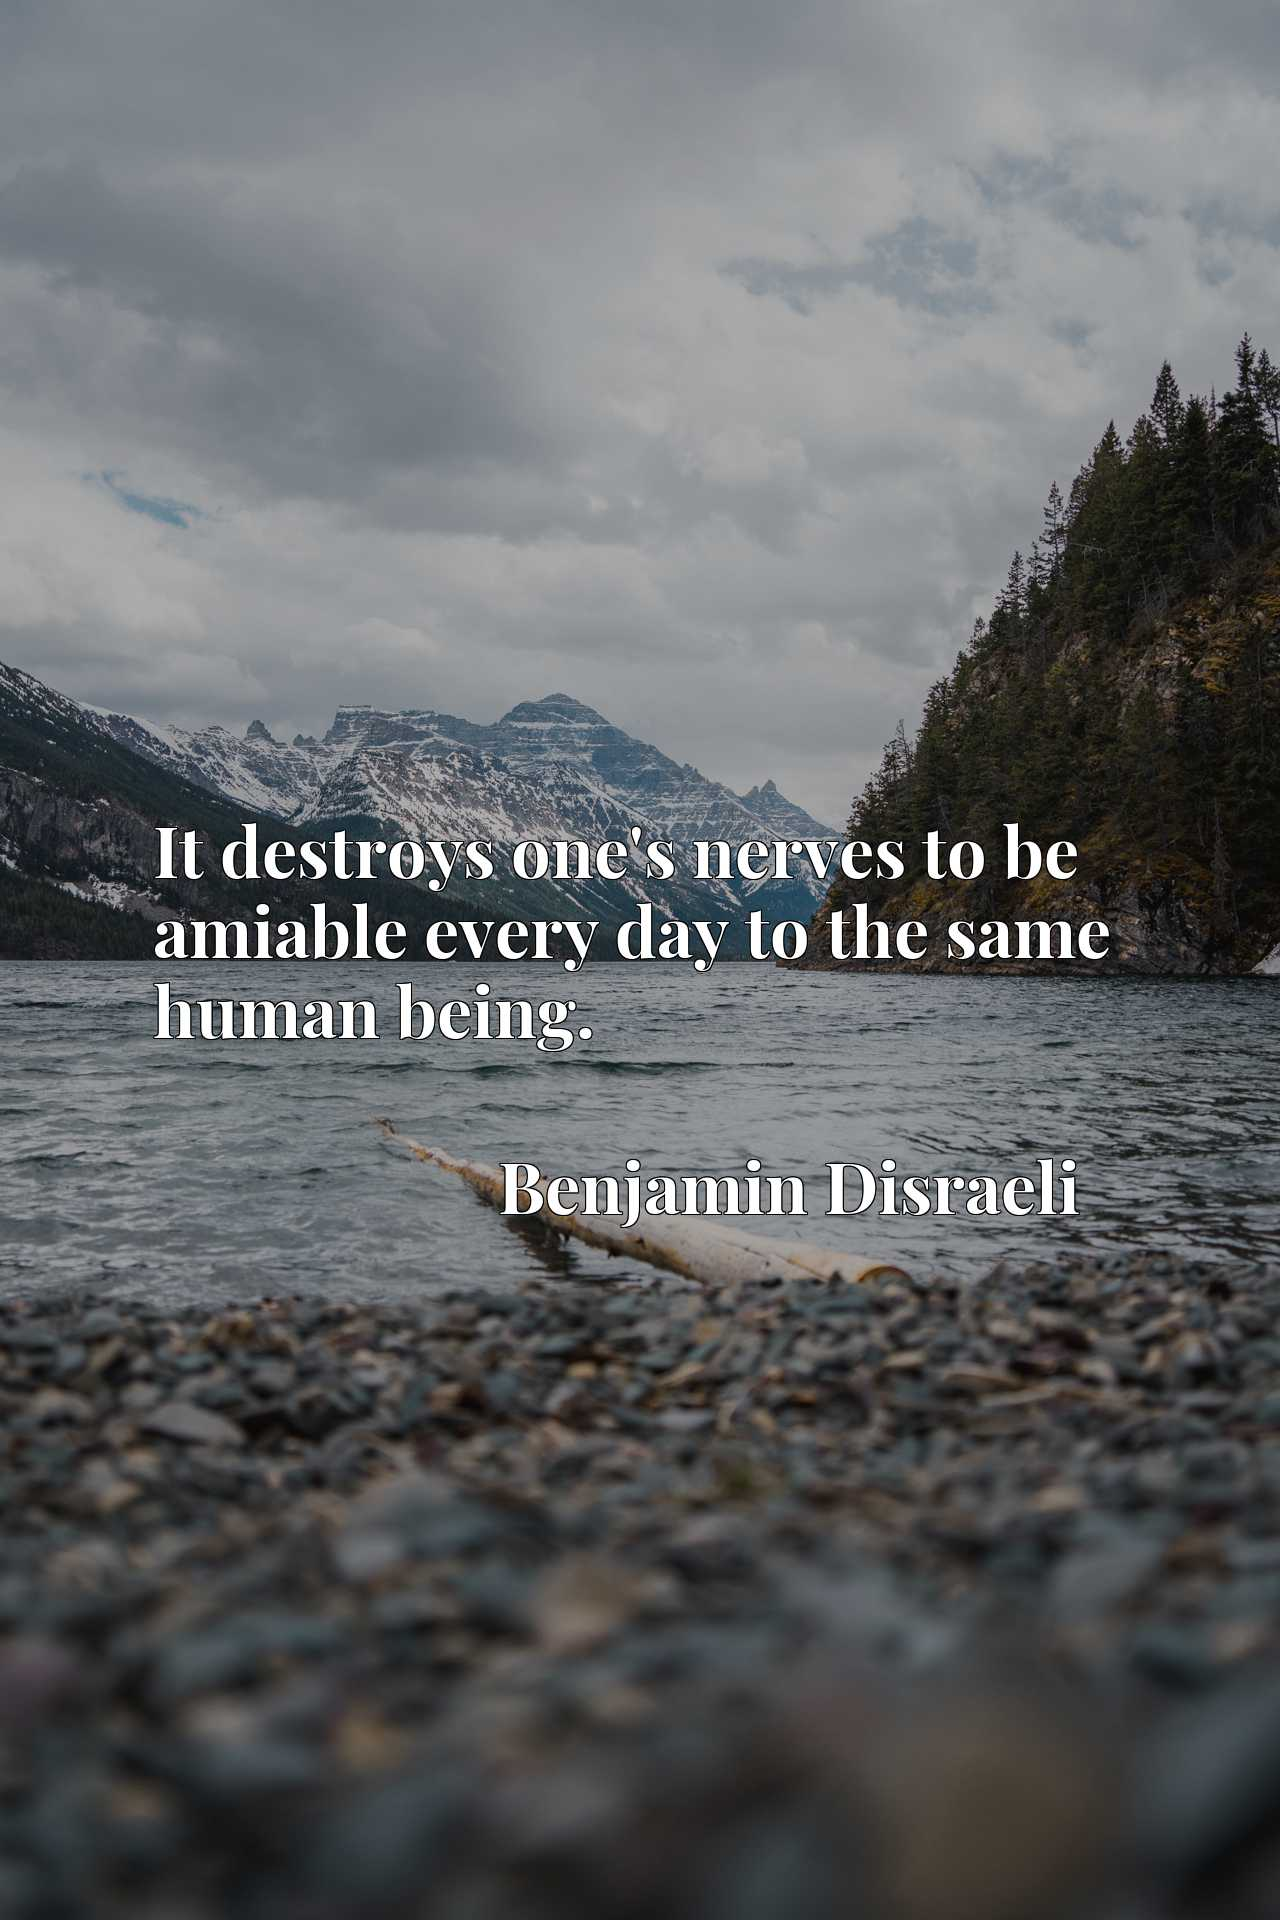 Quote Picture :It destroys one's nerves to be amiable every day to the same human being.